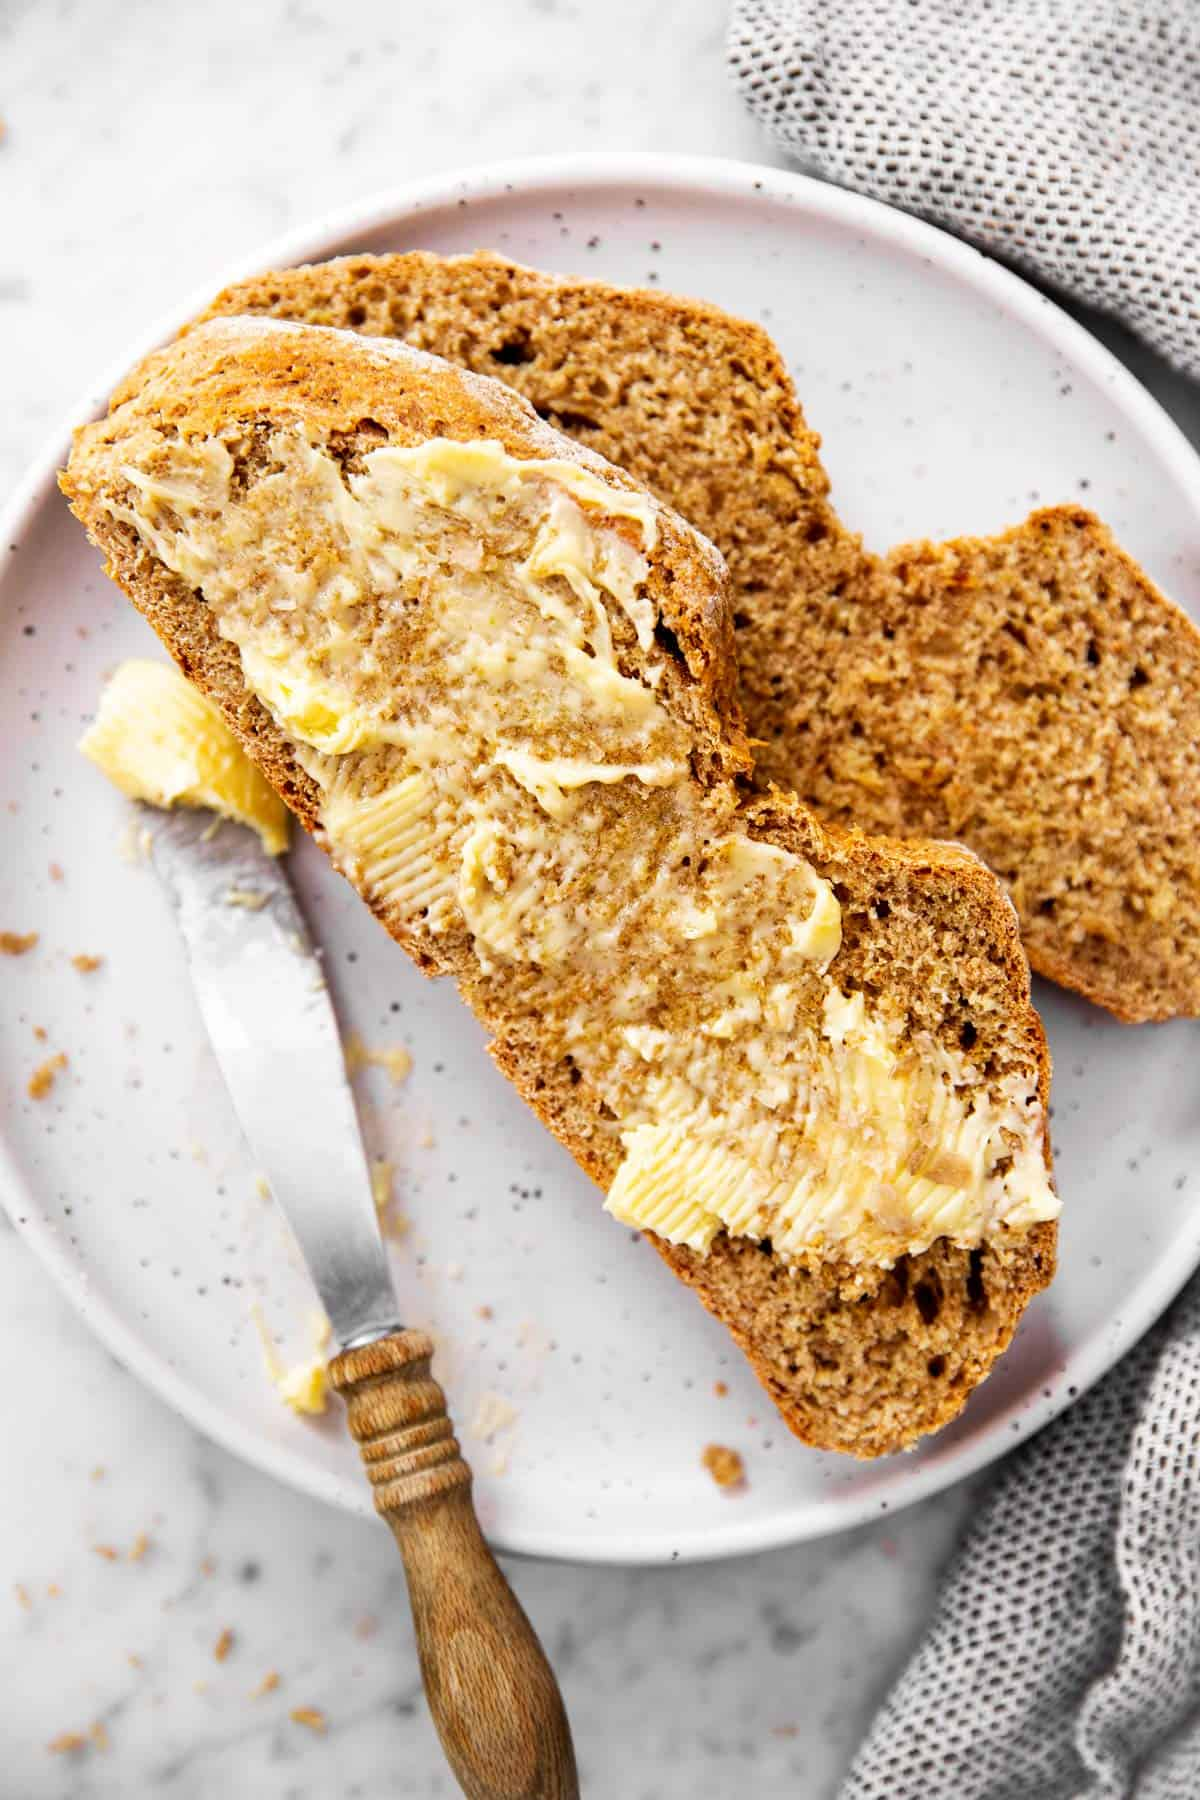 two slices of soda bread on white plate, one slice is buttered the other is plain